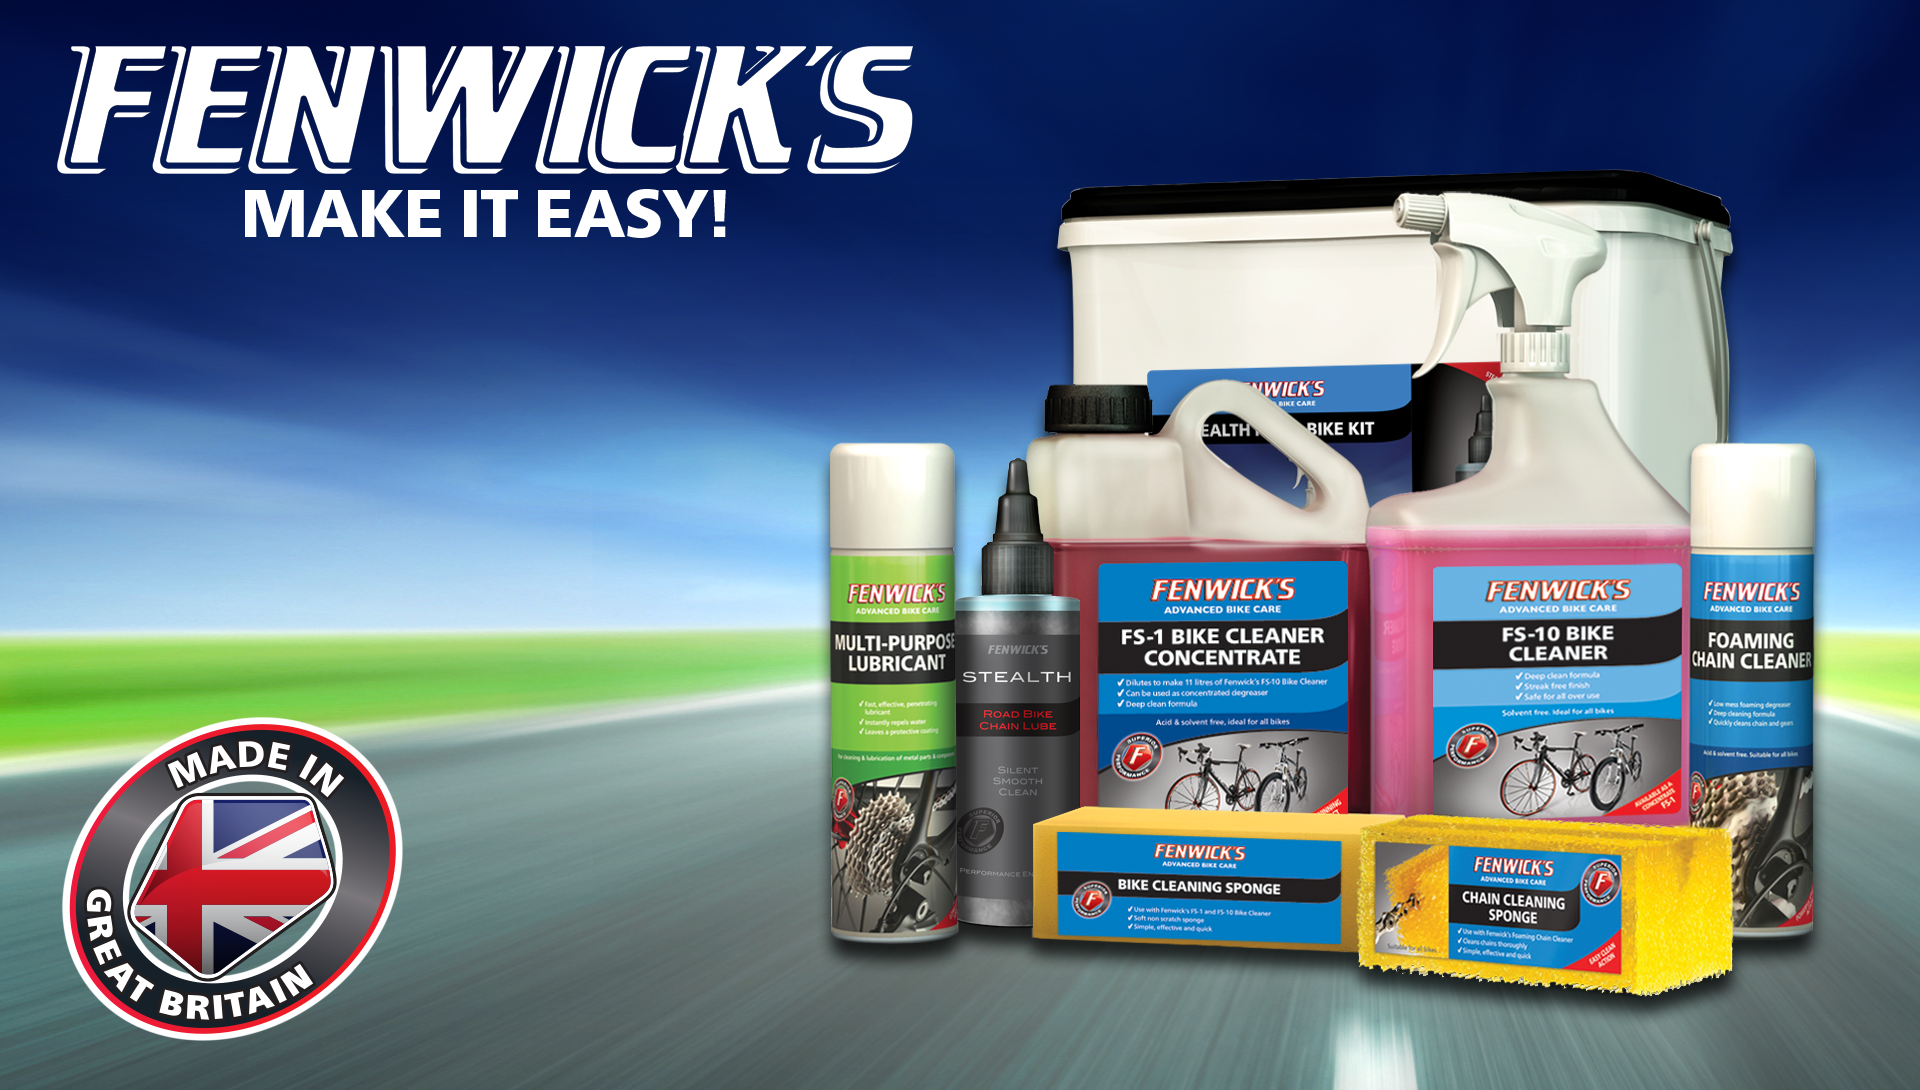 Fenwick's appointed Official Bike Cleaning Partner to Tour events